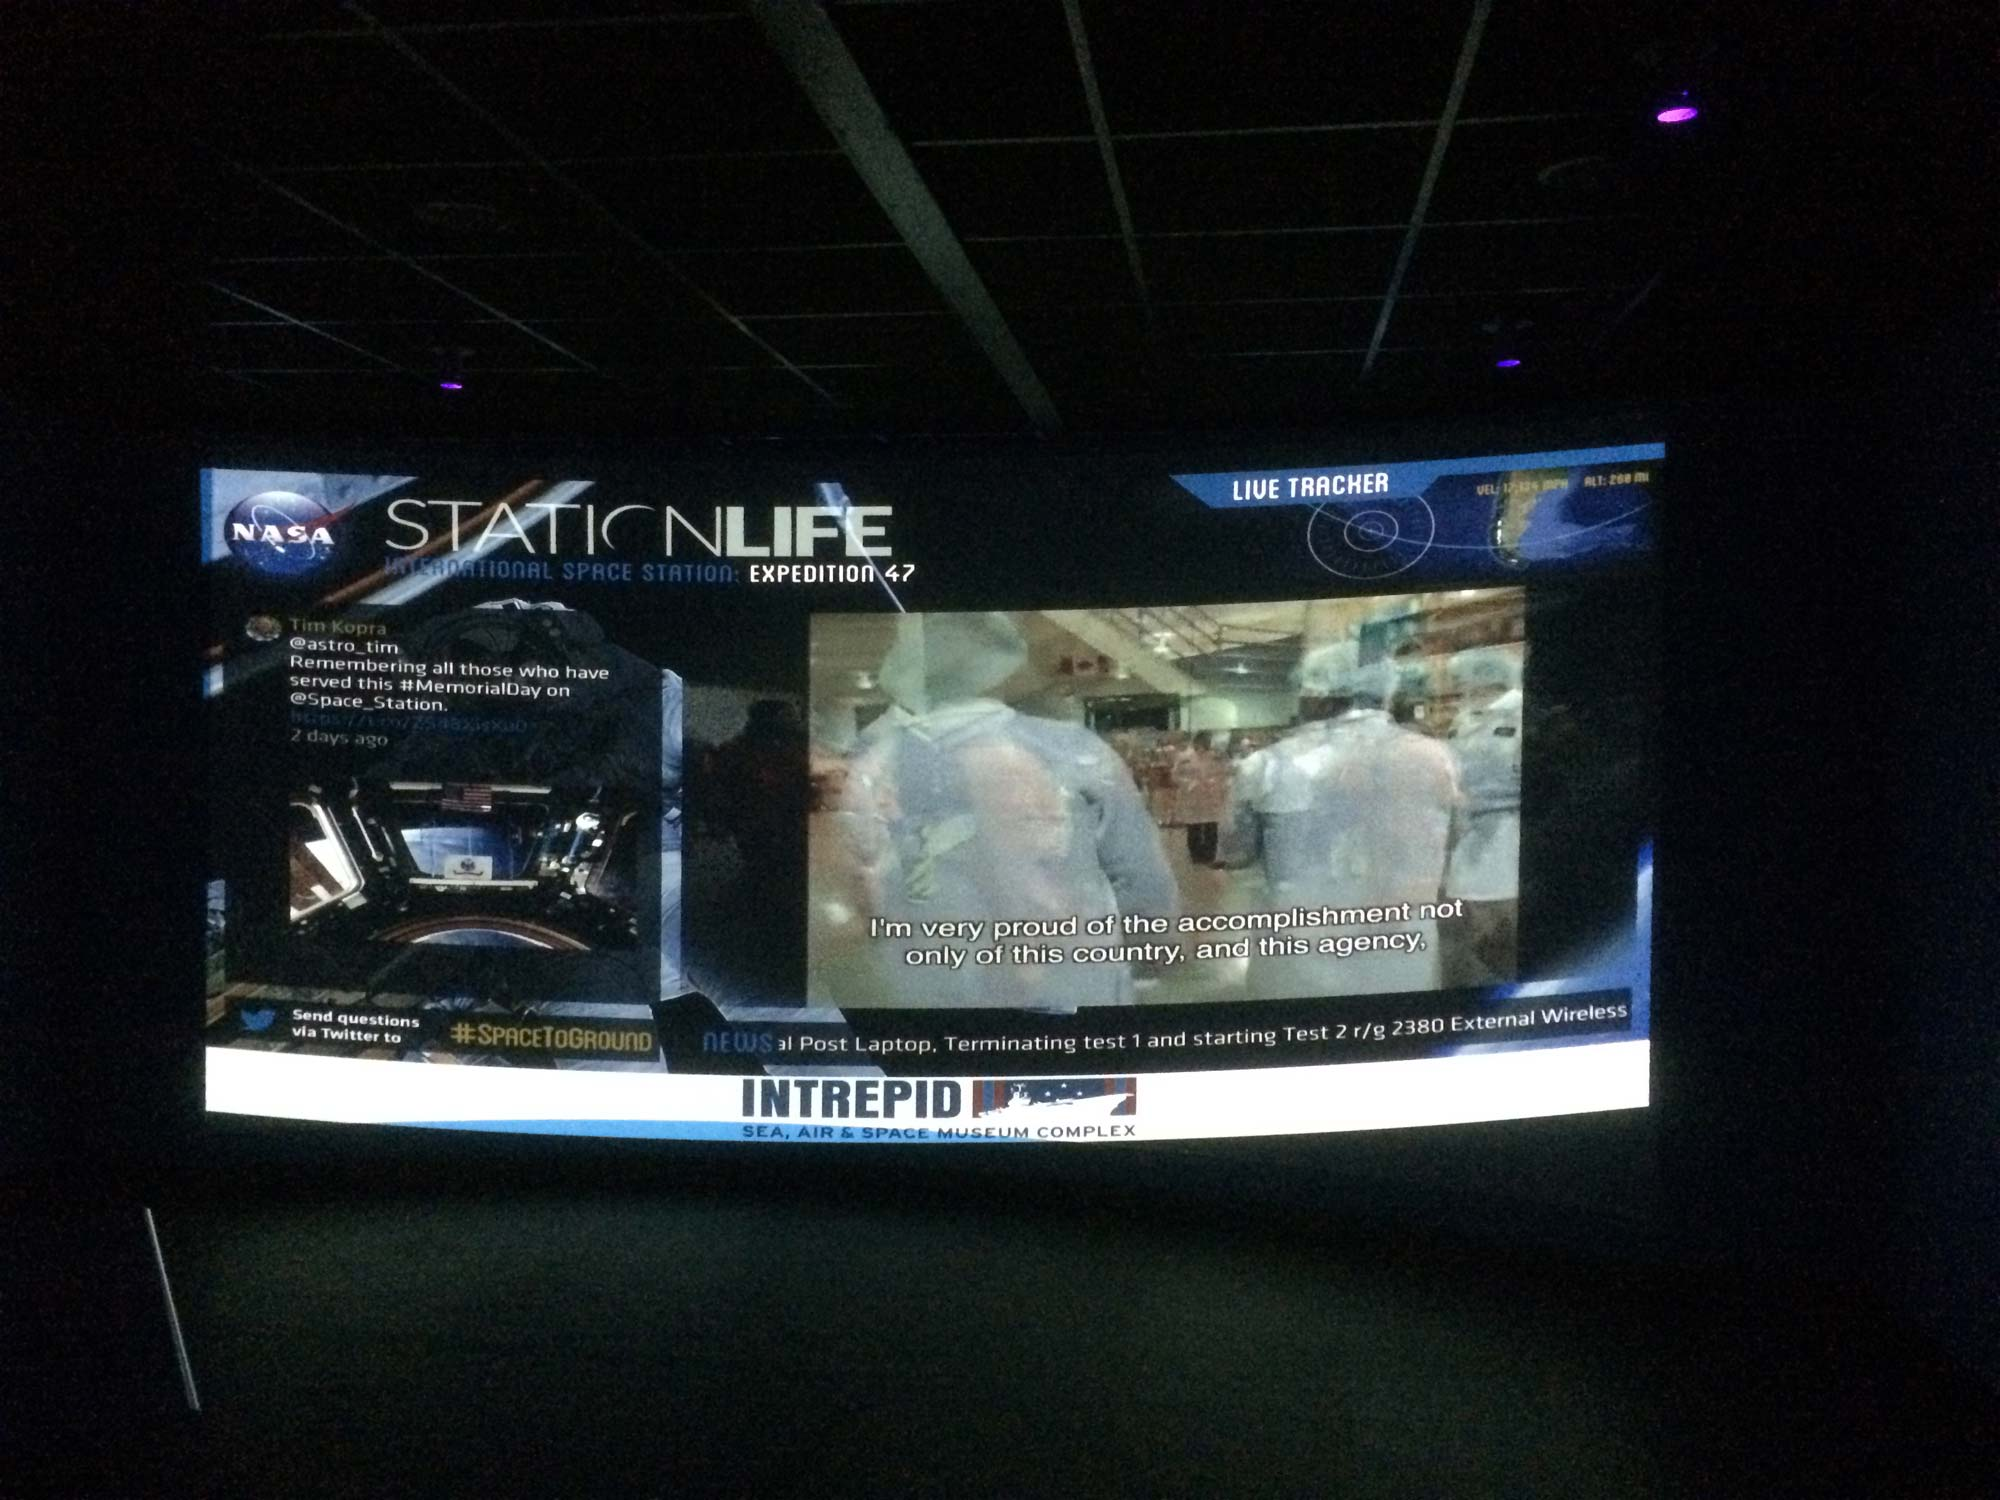 Intrepid Sea, Air & Space Museum's new StationLIFE exhibit